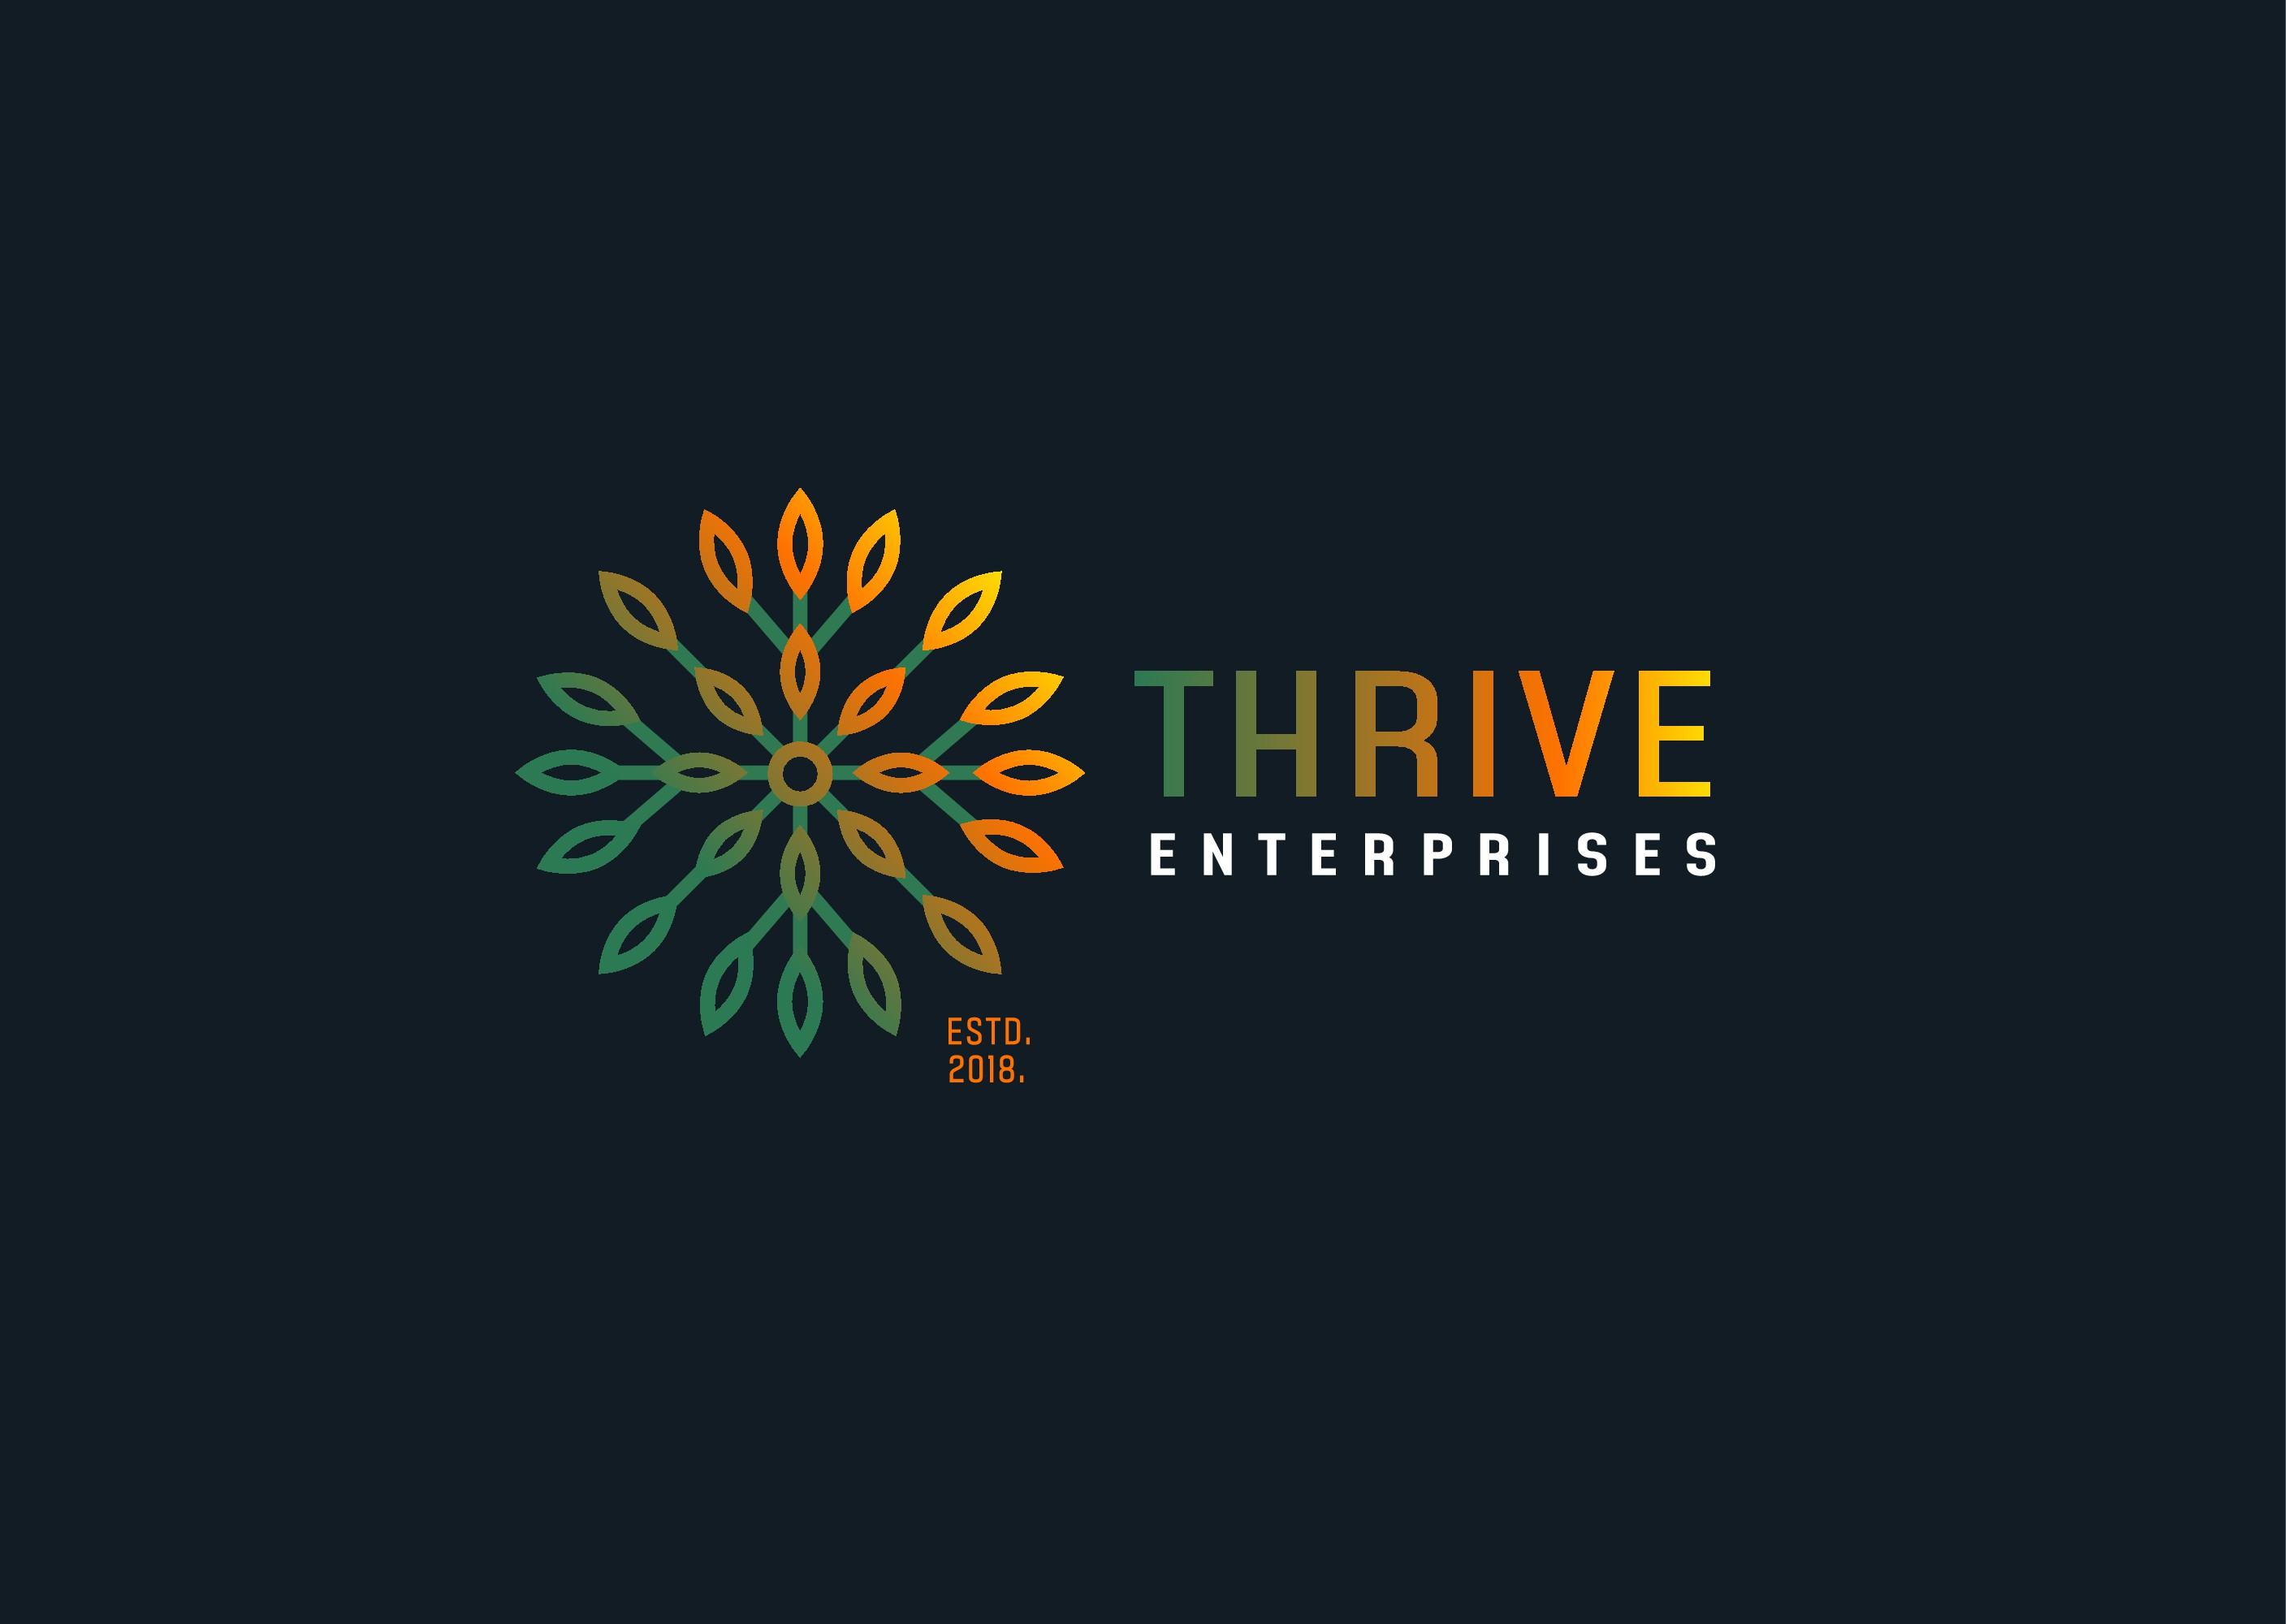 Thrive Enterprises is looking for an upscale logo for a cannabis cultivation and processing startup